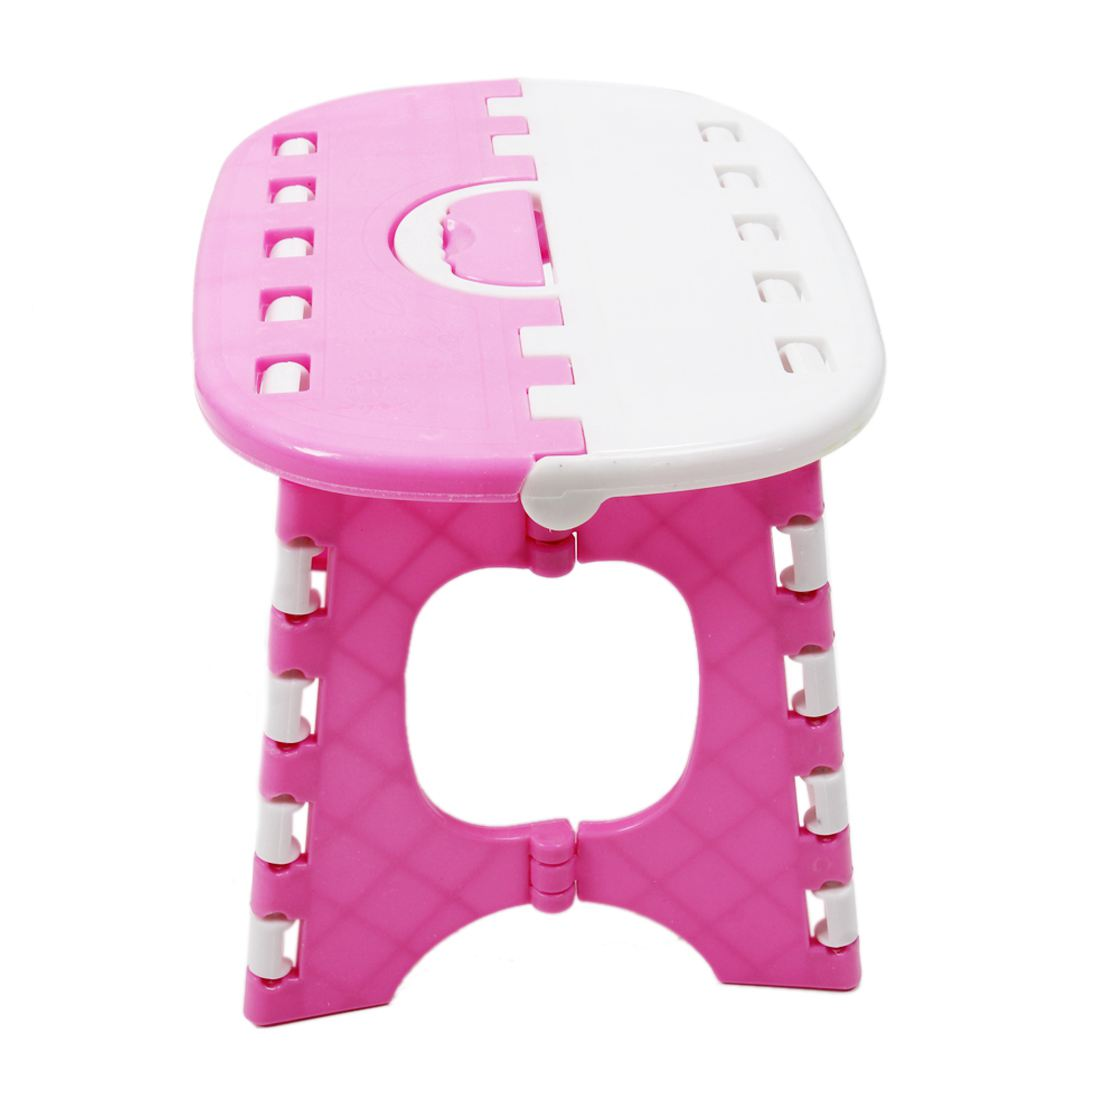 Plastic Folding 6 Type Thicken Step Foldable Portable Child Stools Outdoor Fishing Desk 24.5*19*17.5cm(Pink)